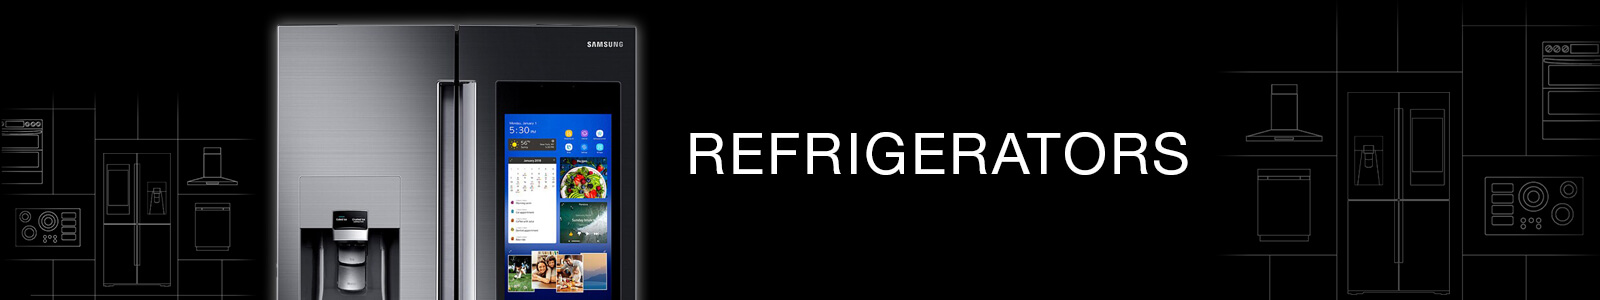 Shop Refrigerators